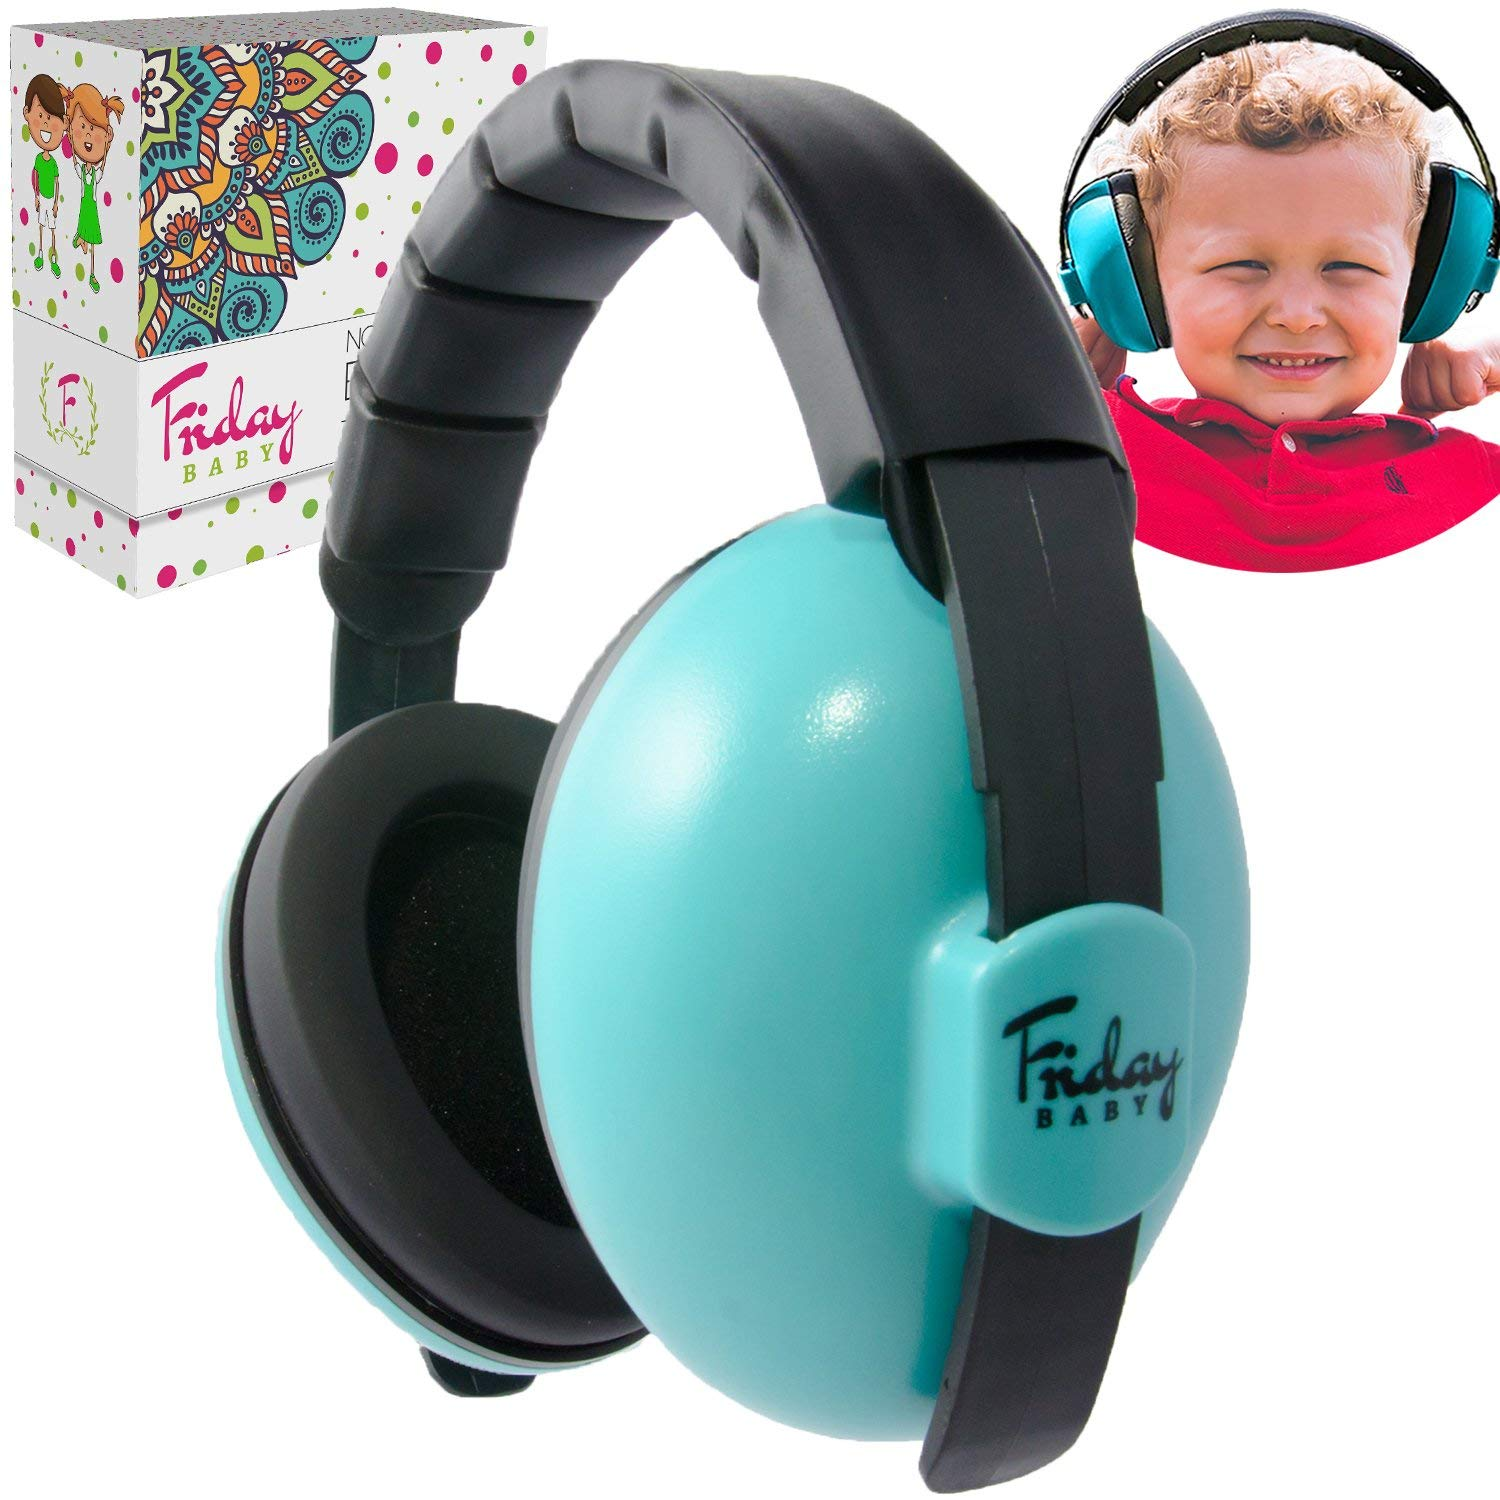 Little Baby Hearing Protective Ear Muffs Comfortable Noise Reduction Ear Buff For Protecting Your Infant Toddler Over 3 Months Back To Search Resultssecurity & Protection